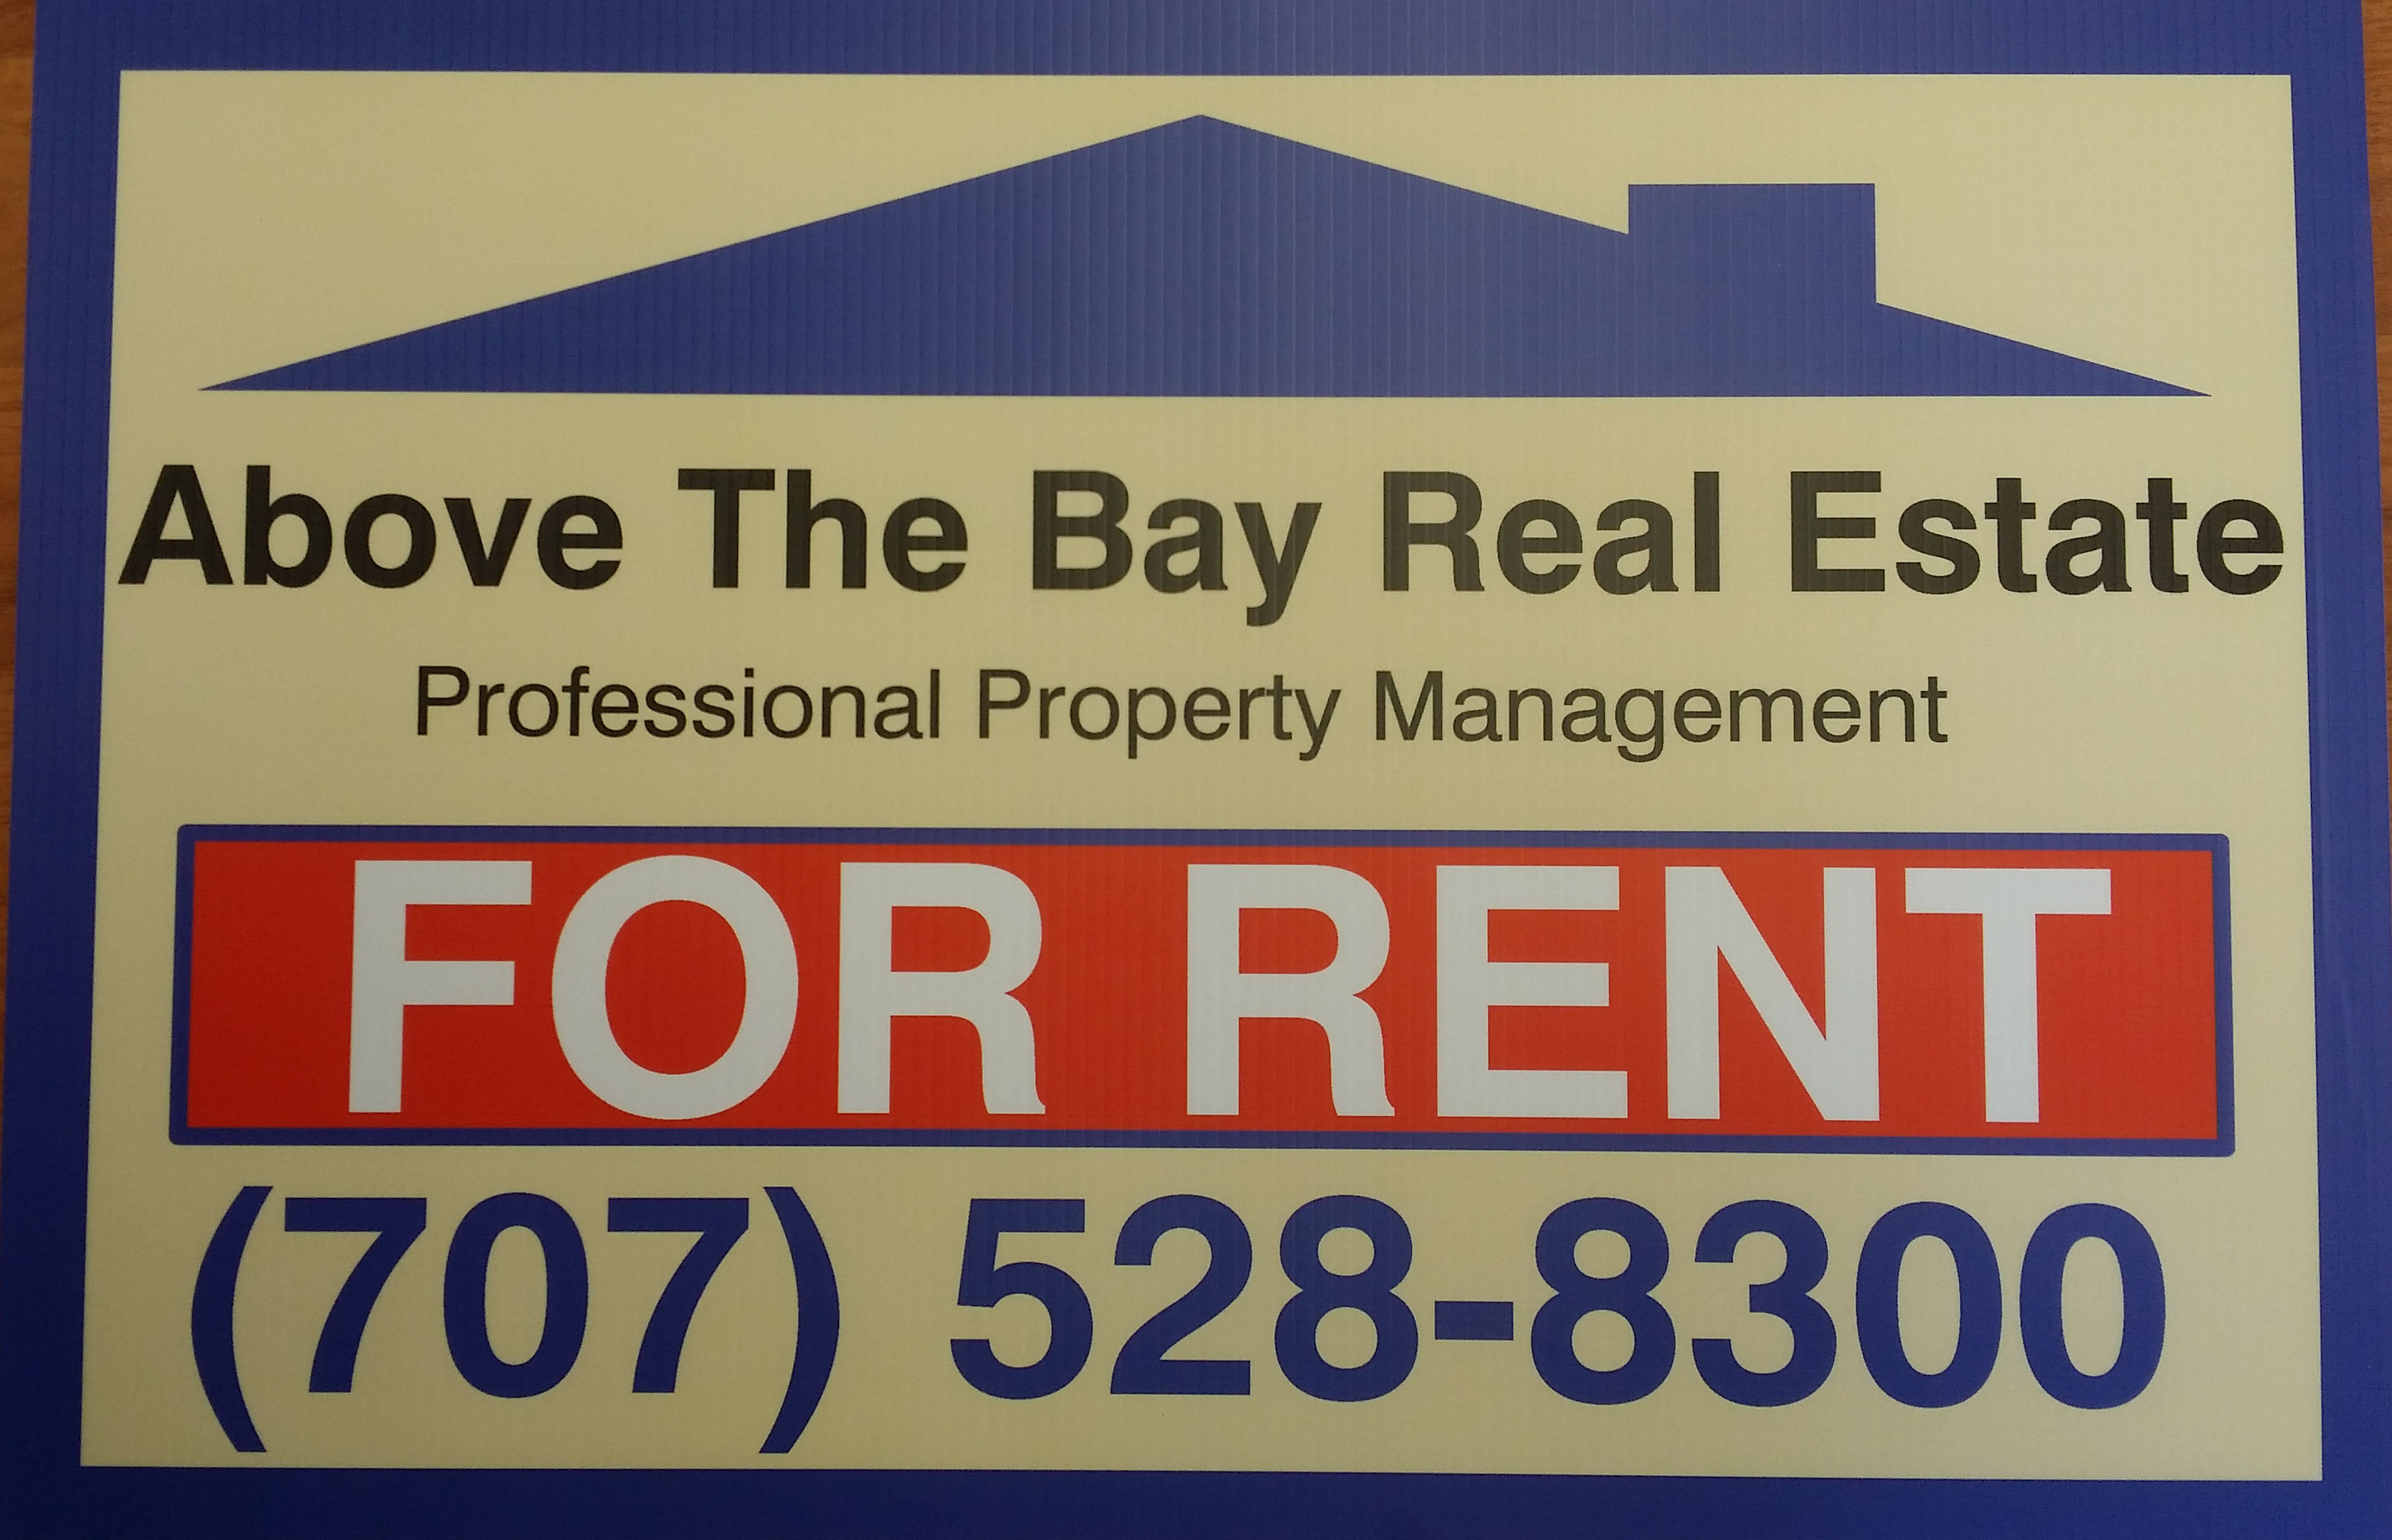 Above The Bay Real Estate